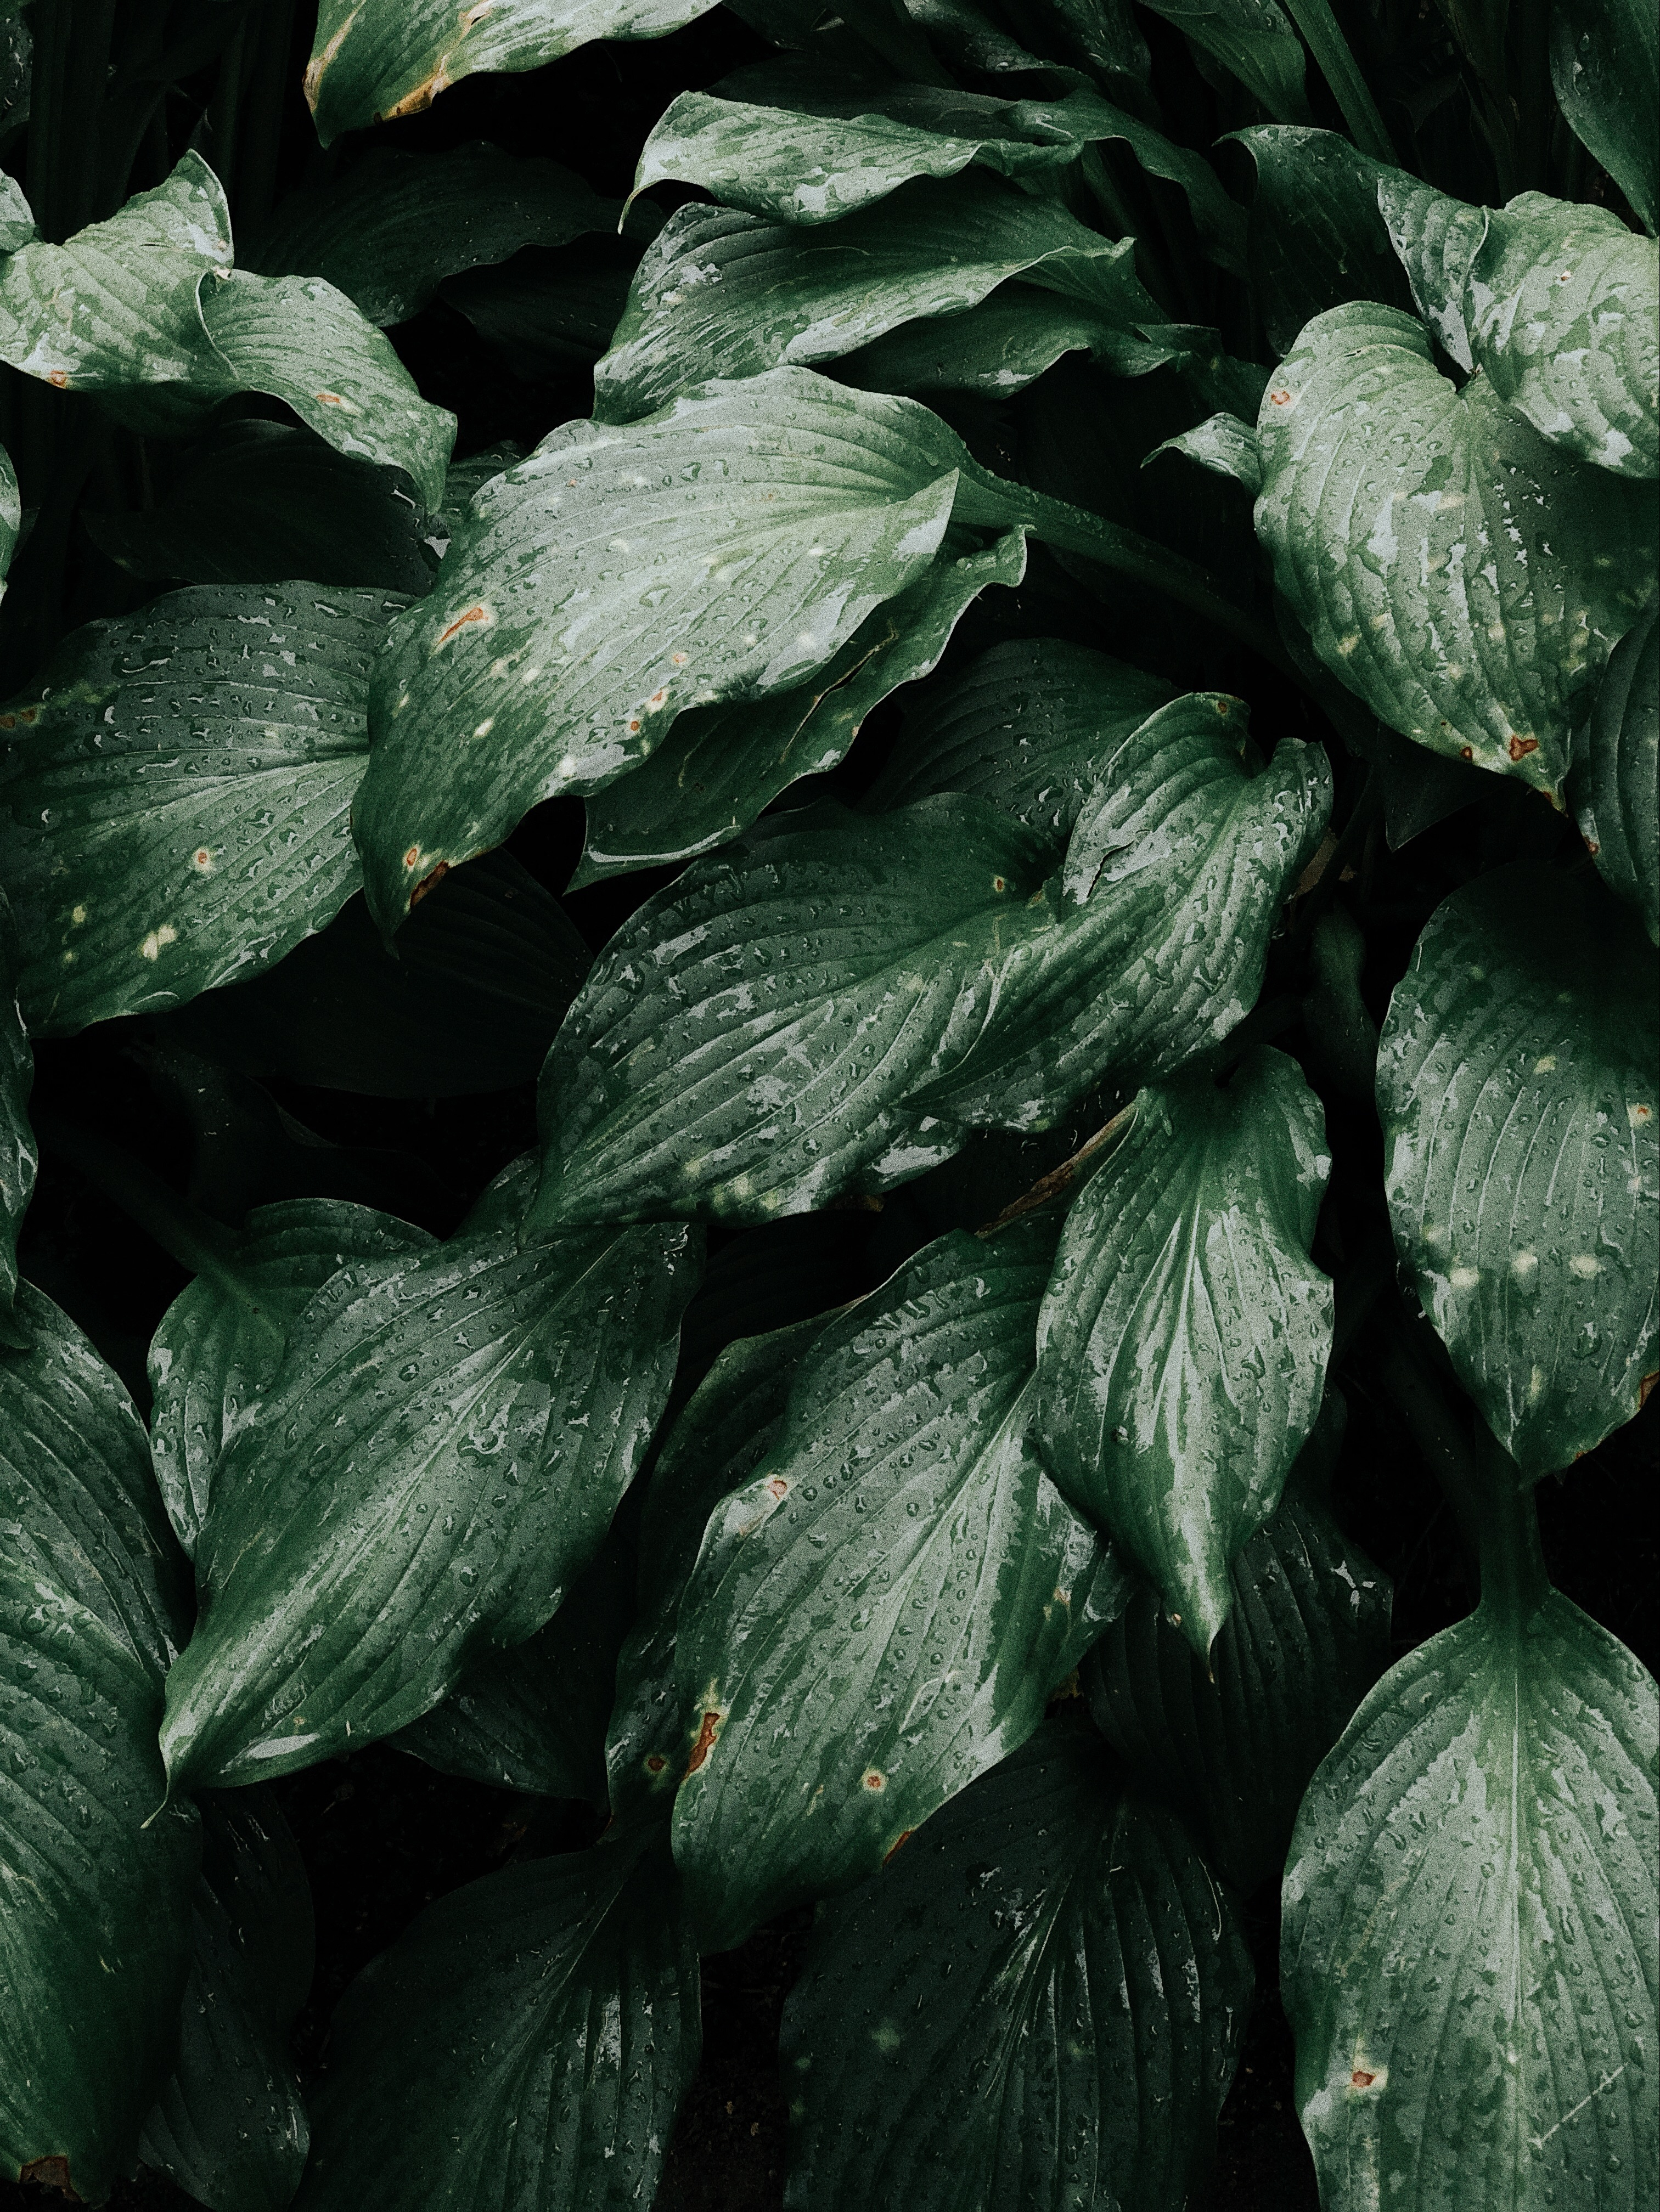 Canva - Close-up Photo of Green Leafy Pl